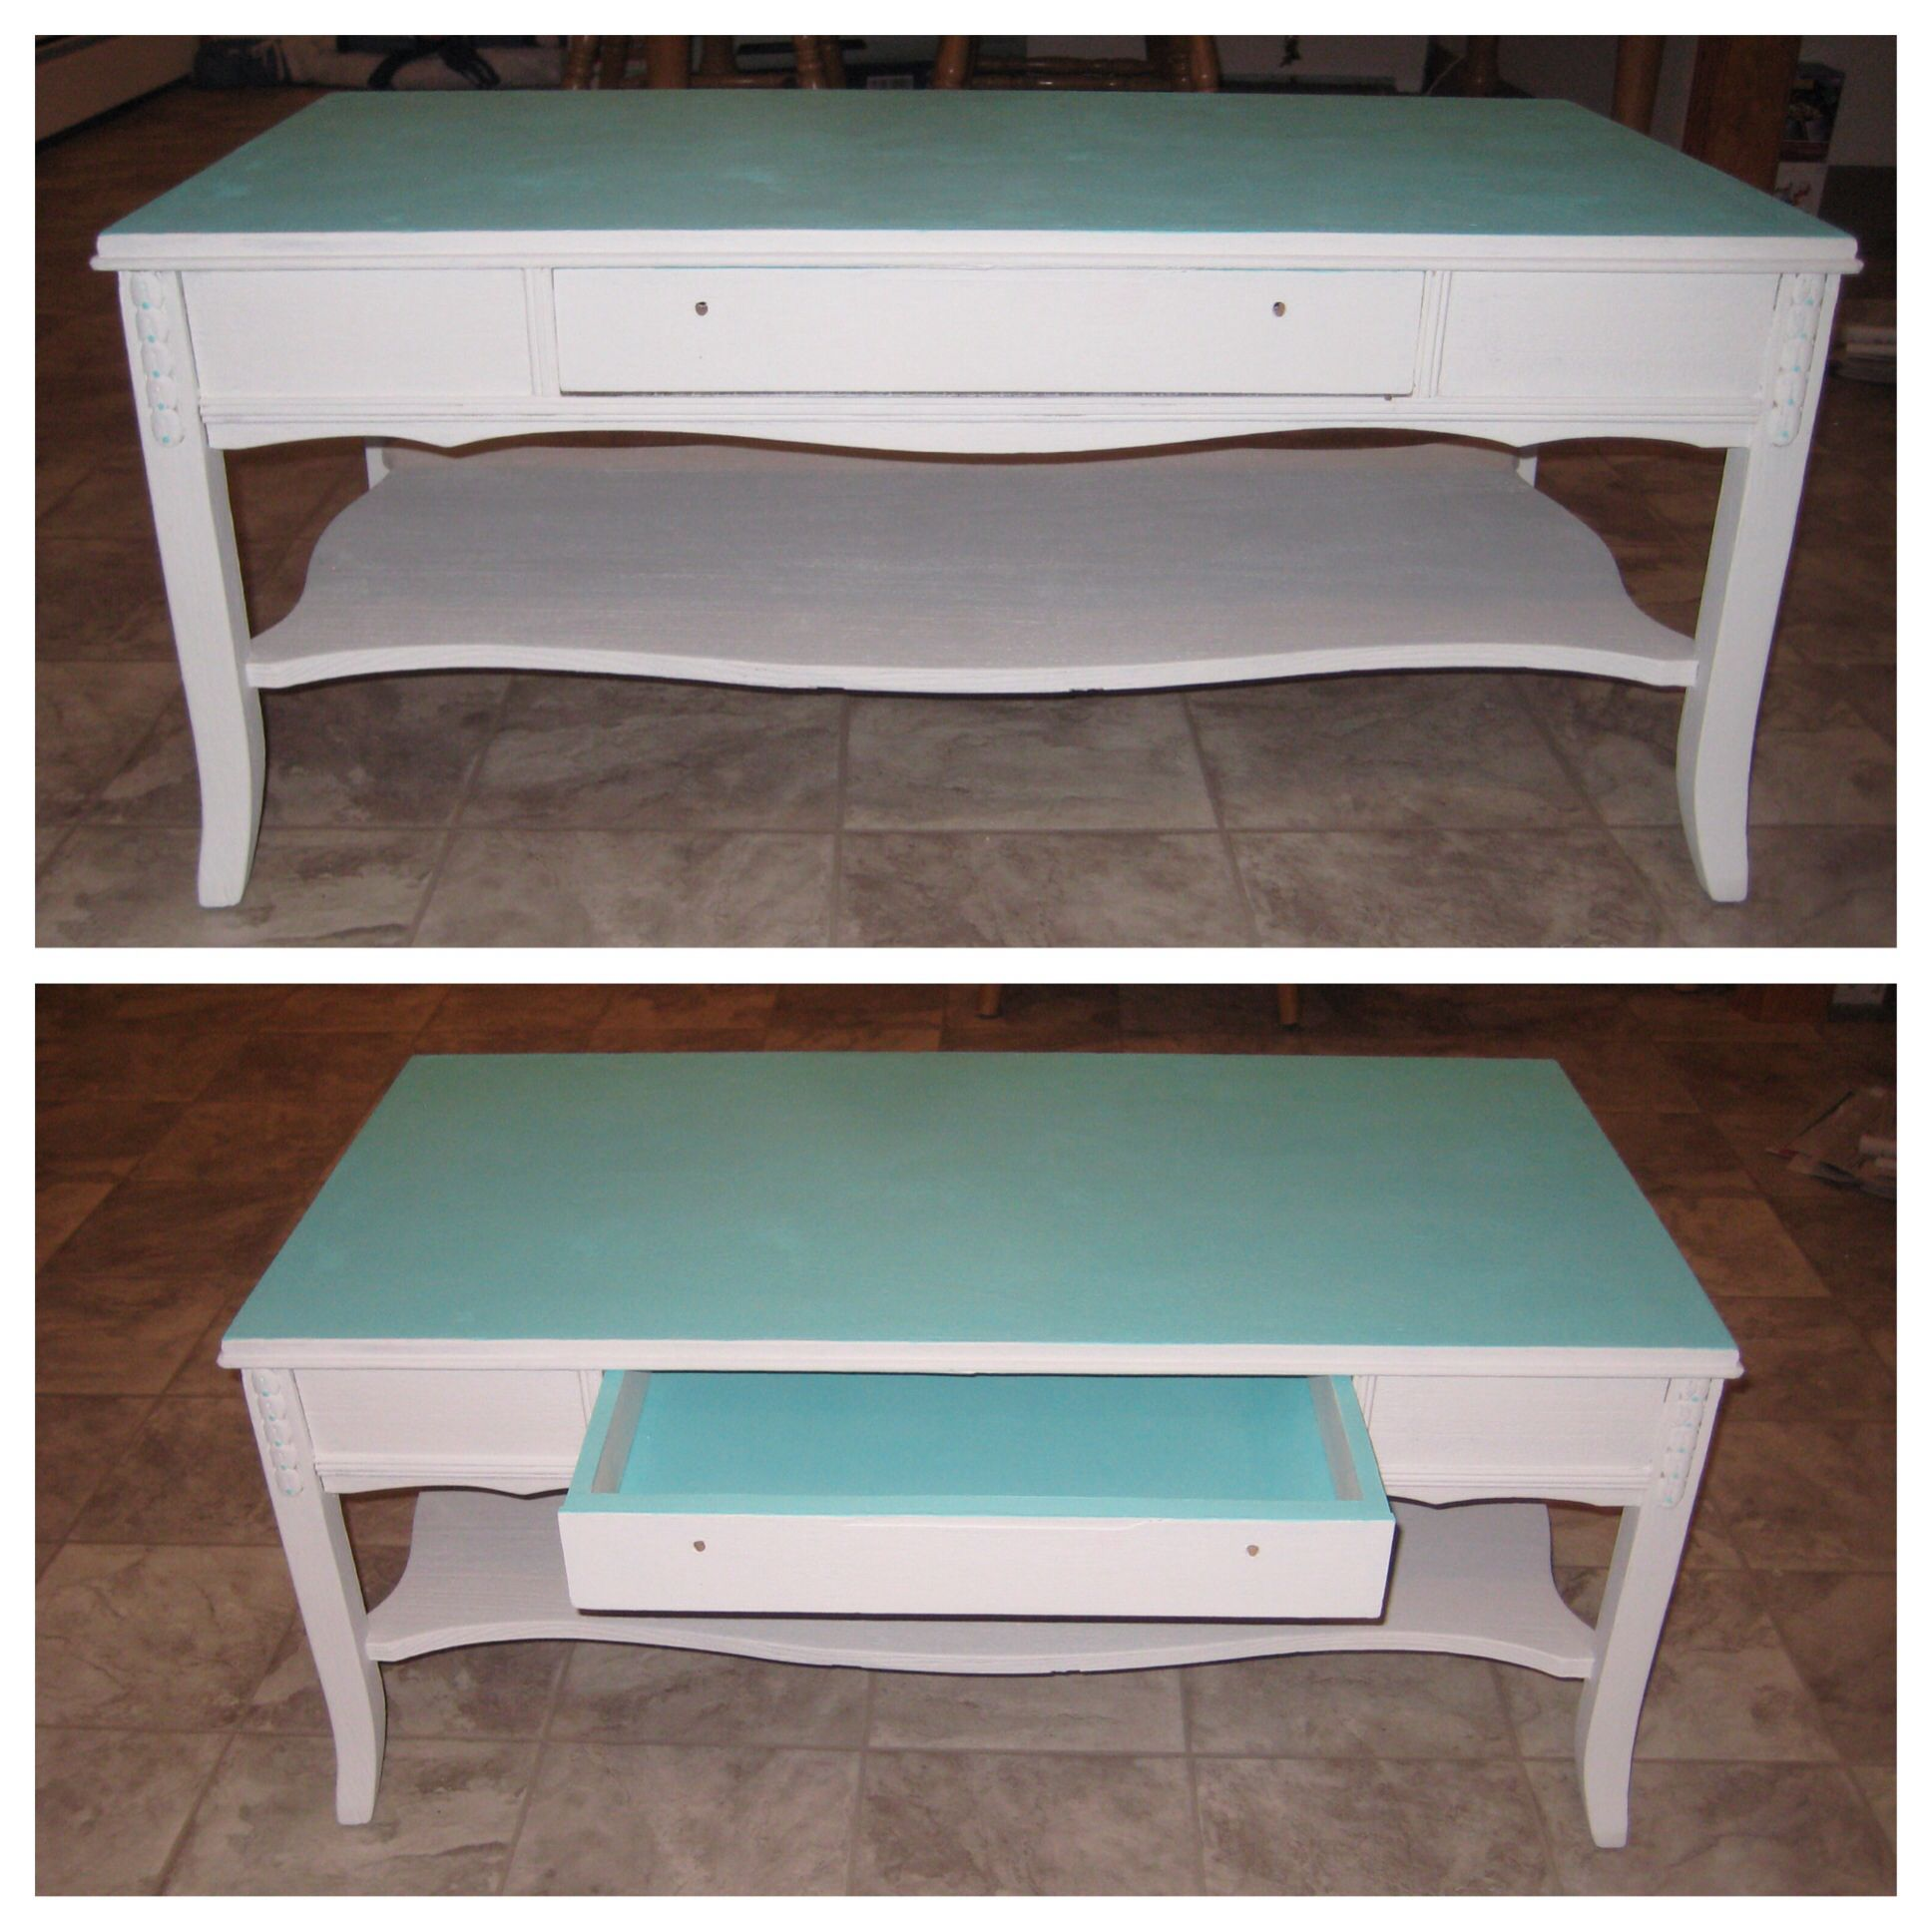 Painted coffee table painted furniture ideas pinterest for Coffee tables painted